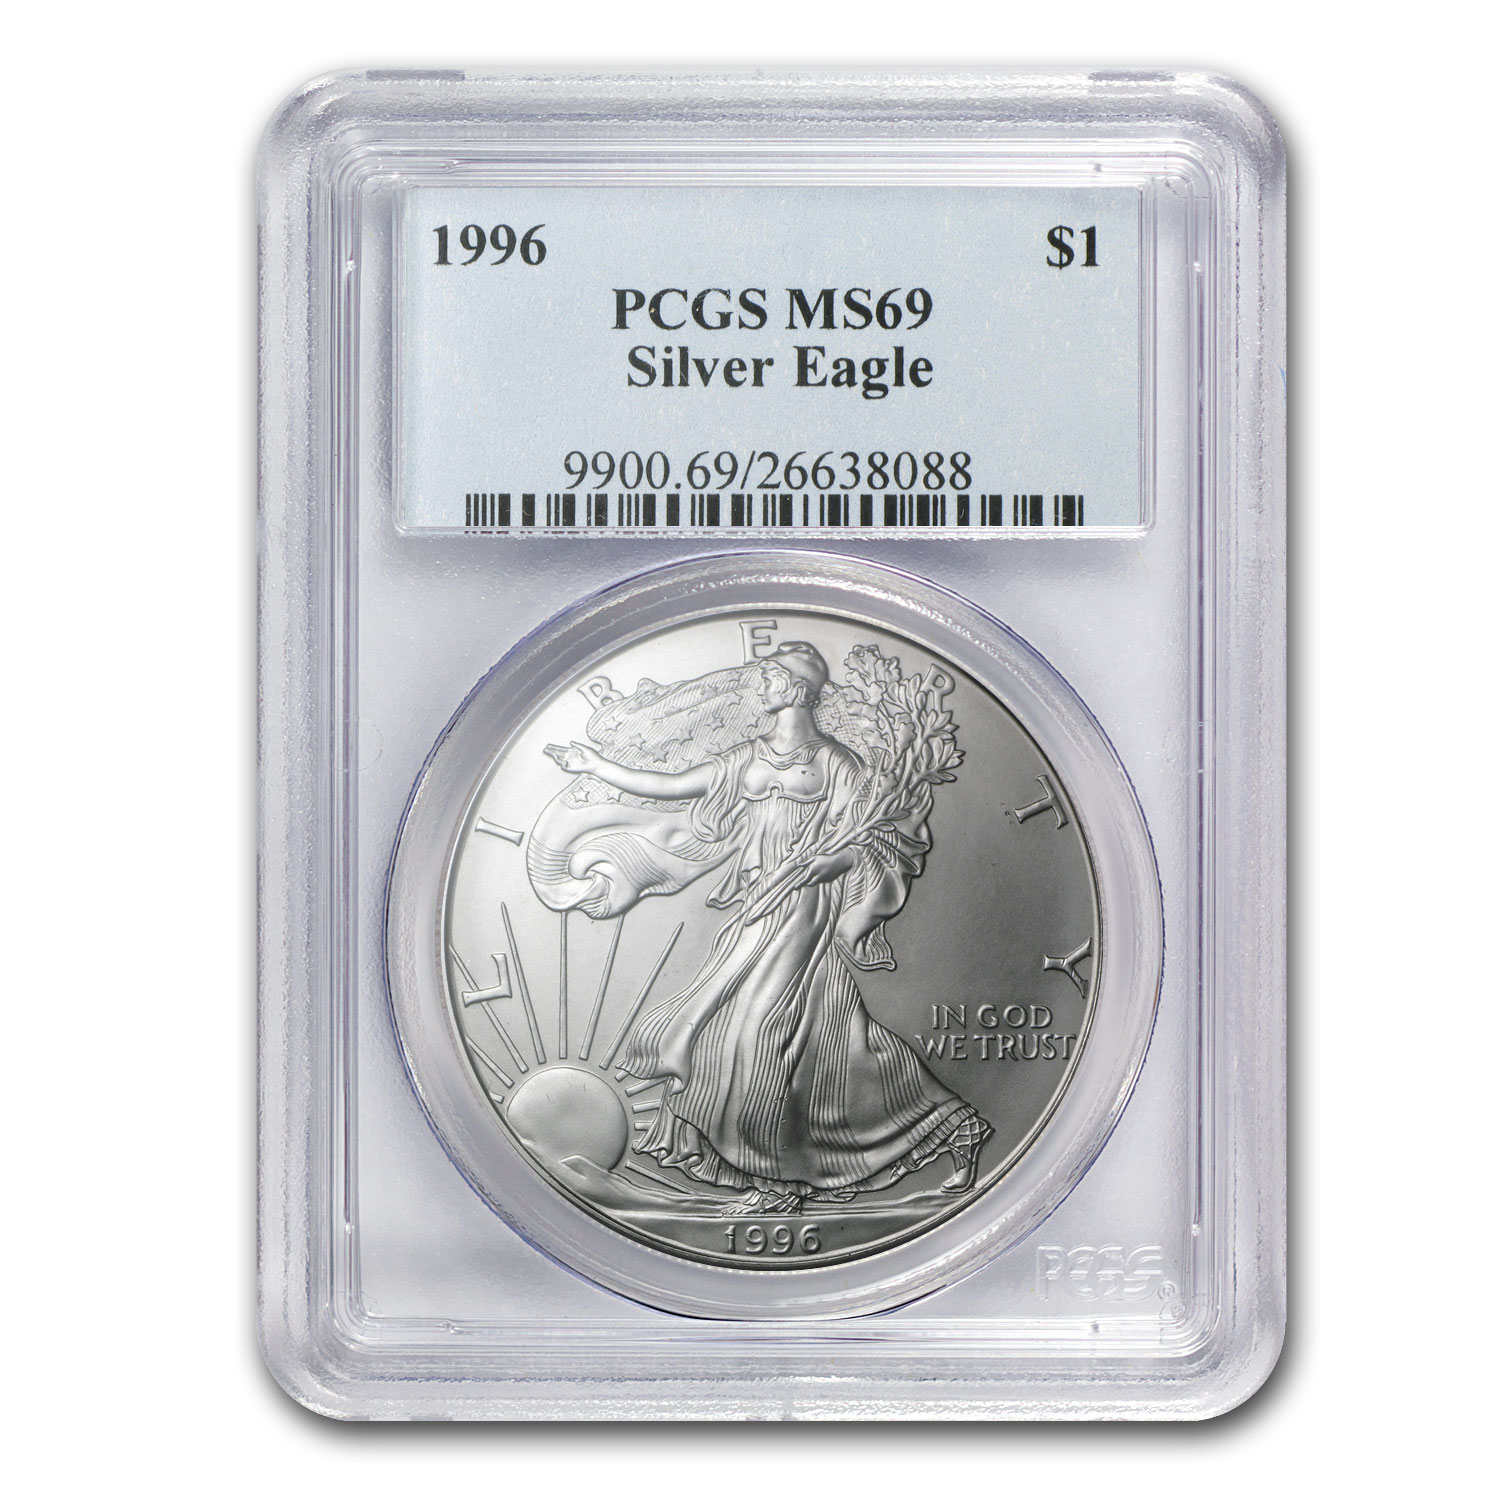 1986-2014 Silver American Eagle Set - MS-69 PCGS - PCGS Box